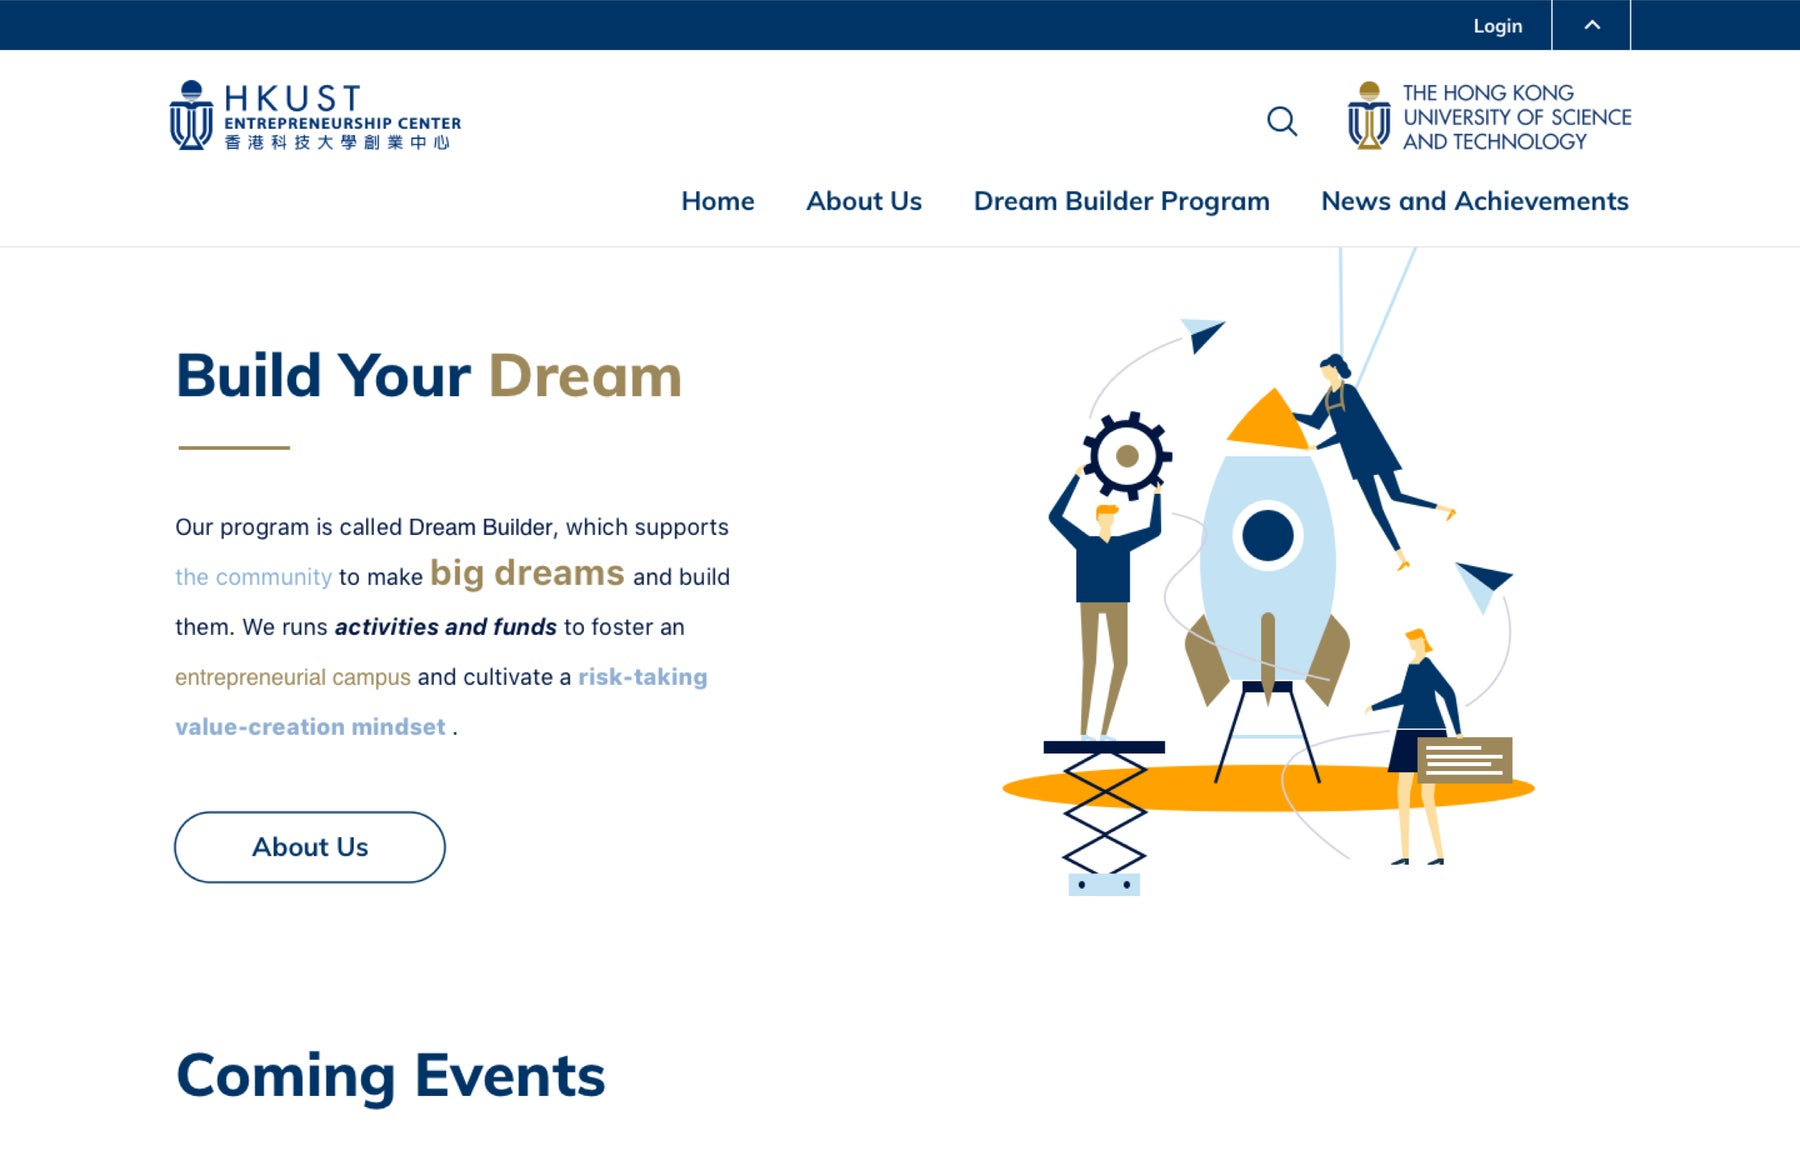 A brand new App and Website to help support innovation and entrepreneurship in the HKUST campus.